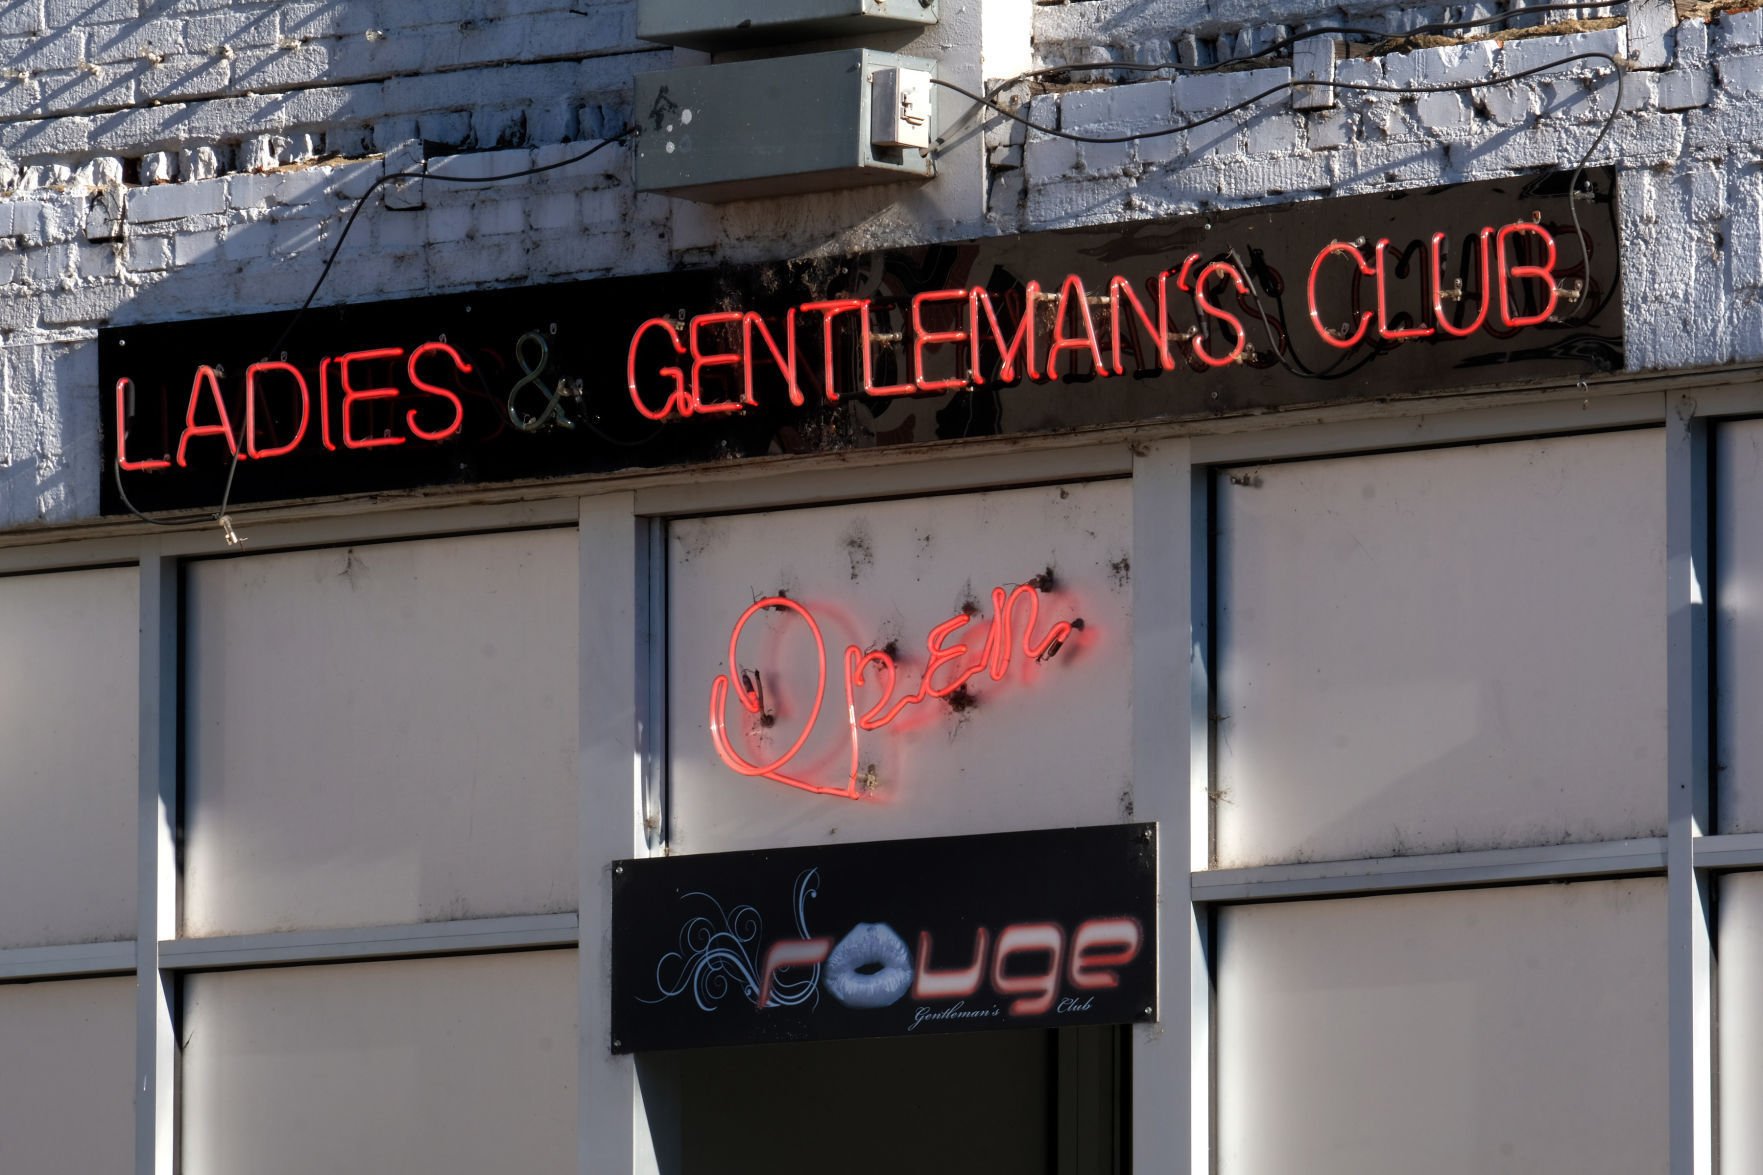 Club Rouge Richmond strippers pursue class action